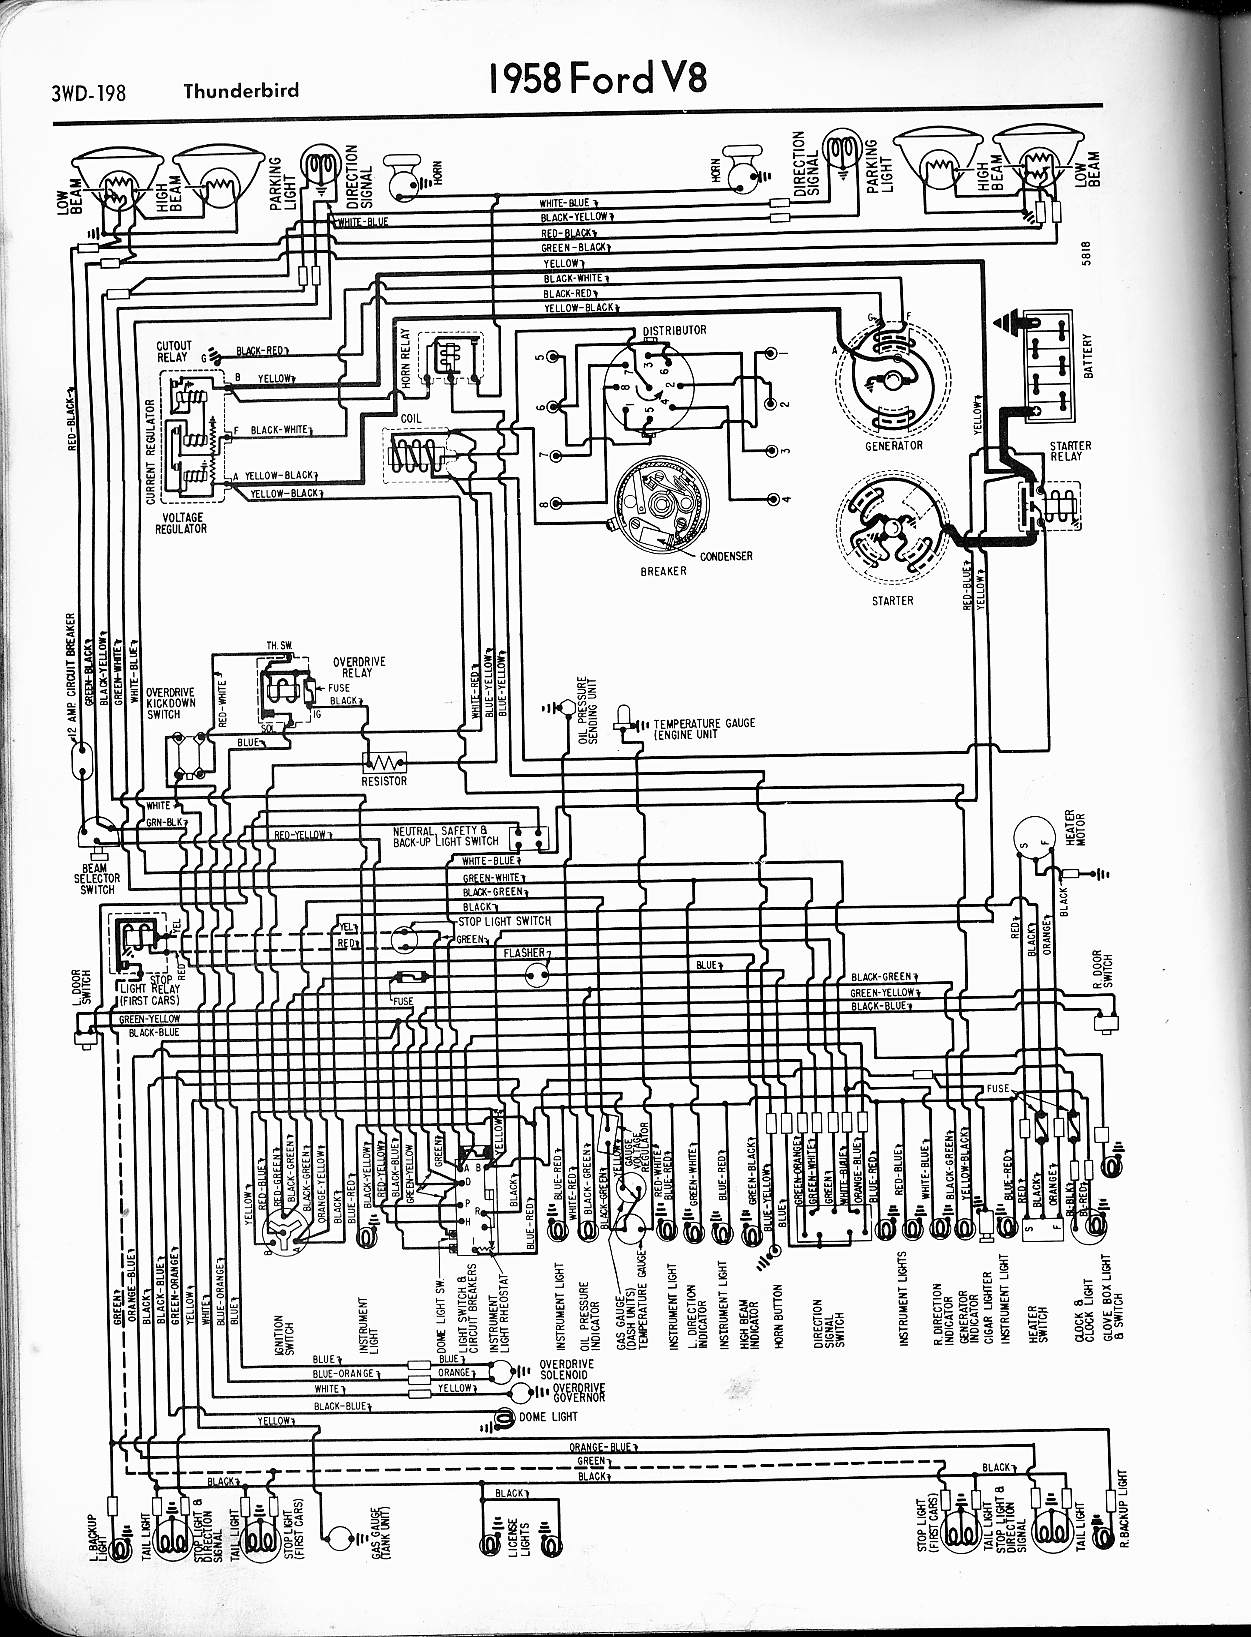 57 65 ford wiring diagrams 1957 thunderbird wiring diagram wiring diagram 1963 ford falcon sprint